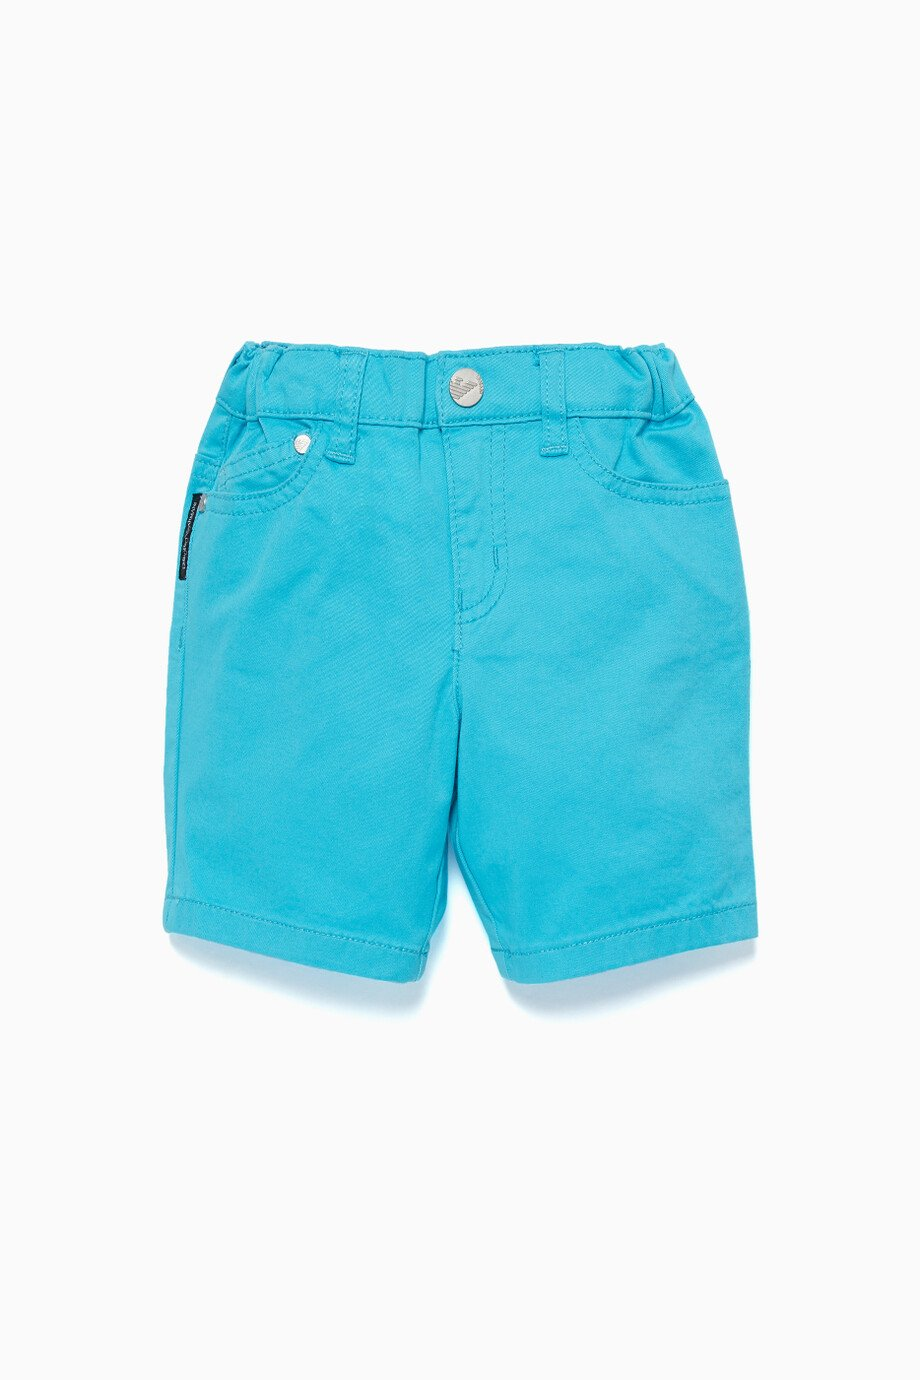 4b5de8d9c Shop Emporio Armani Blue Turquoise Cotton Shorts for Kids | Ounass